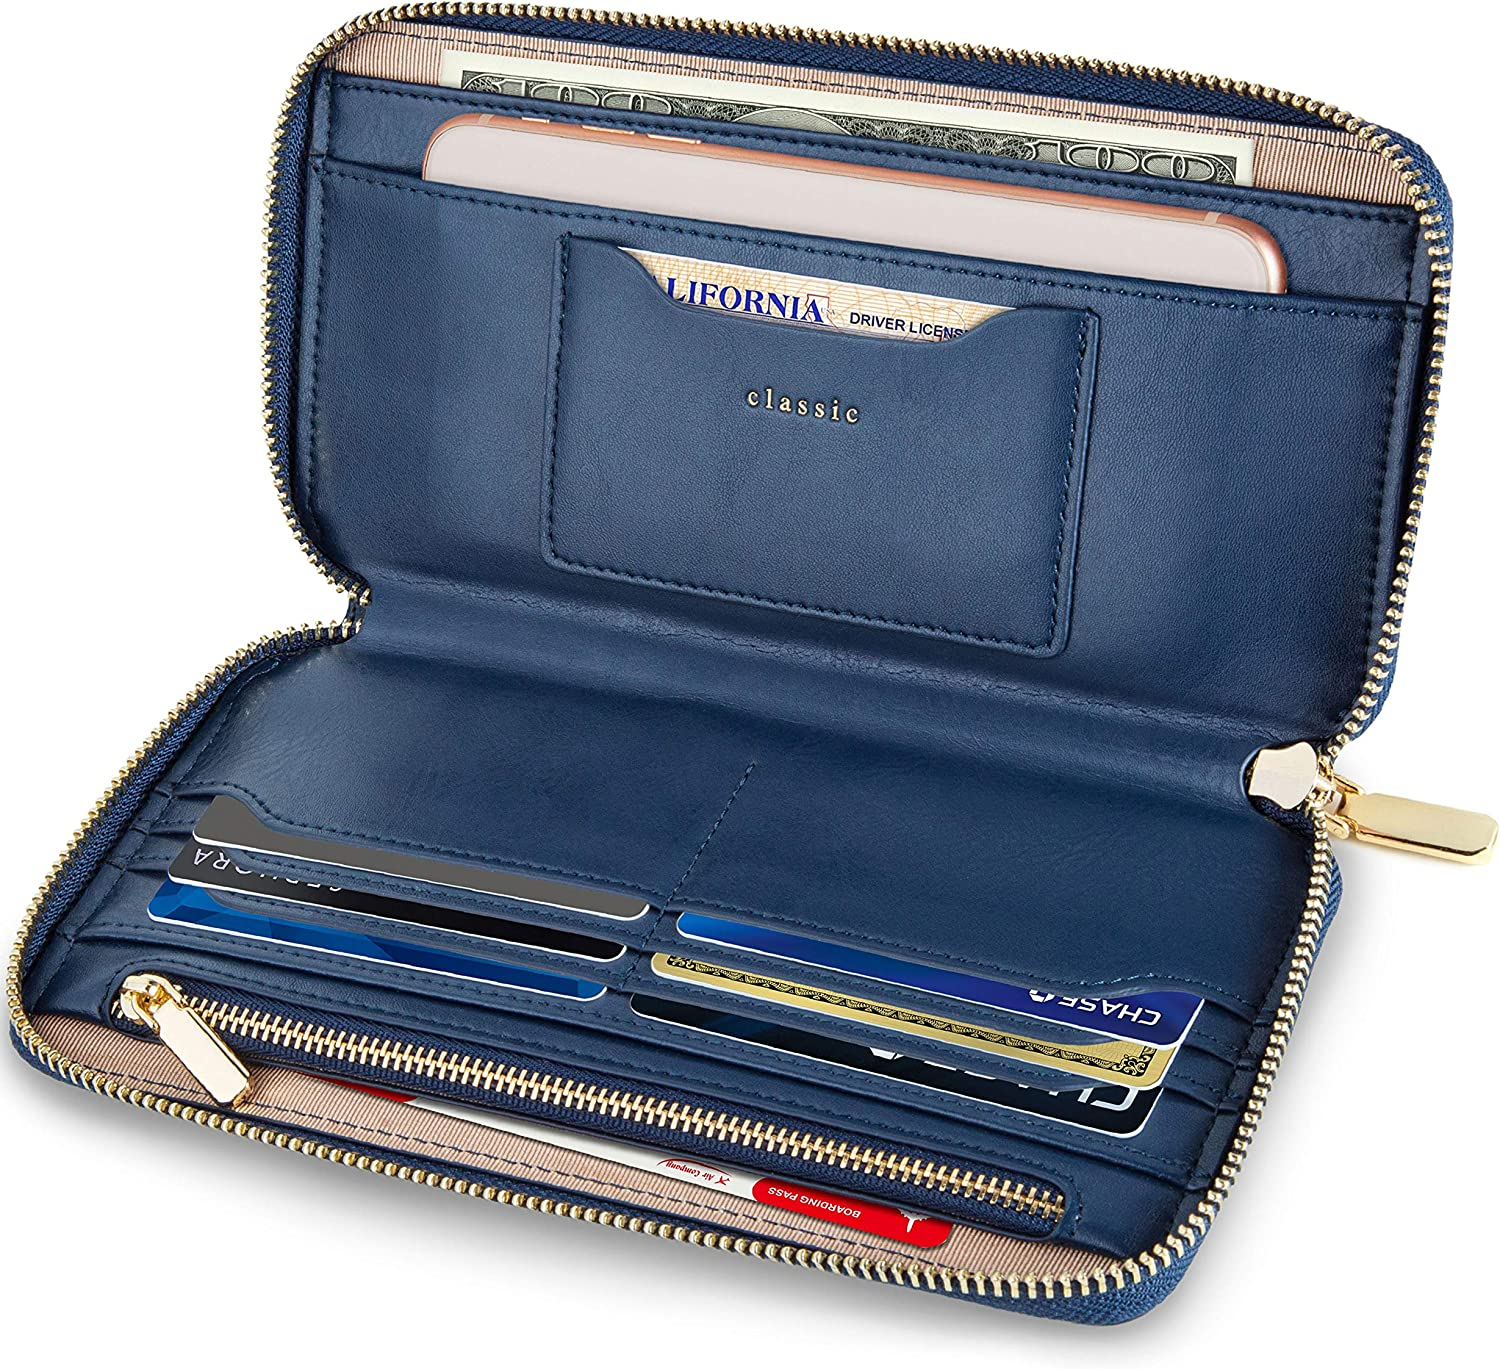 SERMAN BRANDS Women's Classic Clutch RFID for Women free Wallets Challenge the lowest price of Japan ☆ Bloc